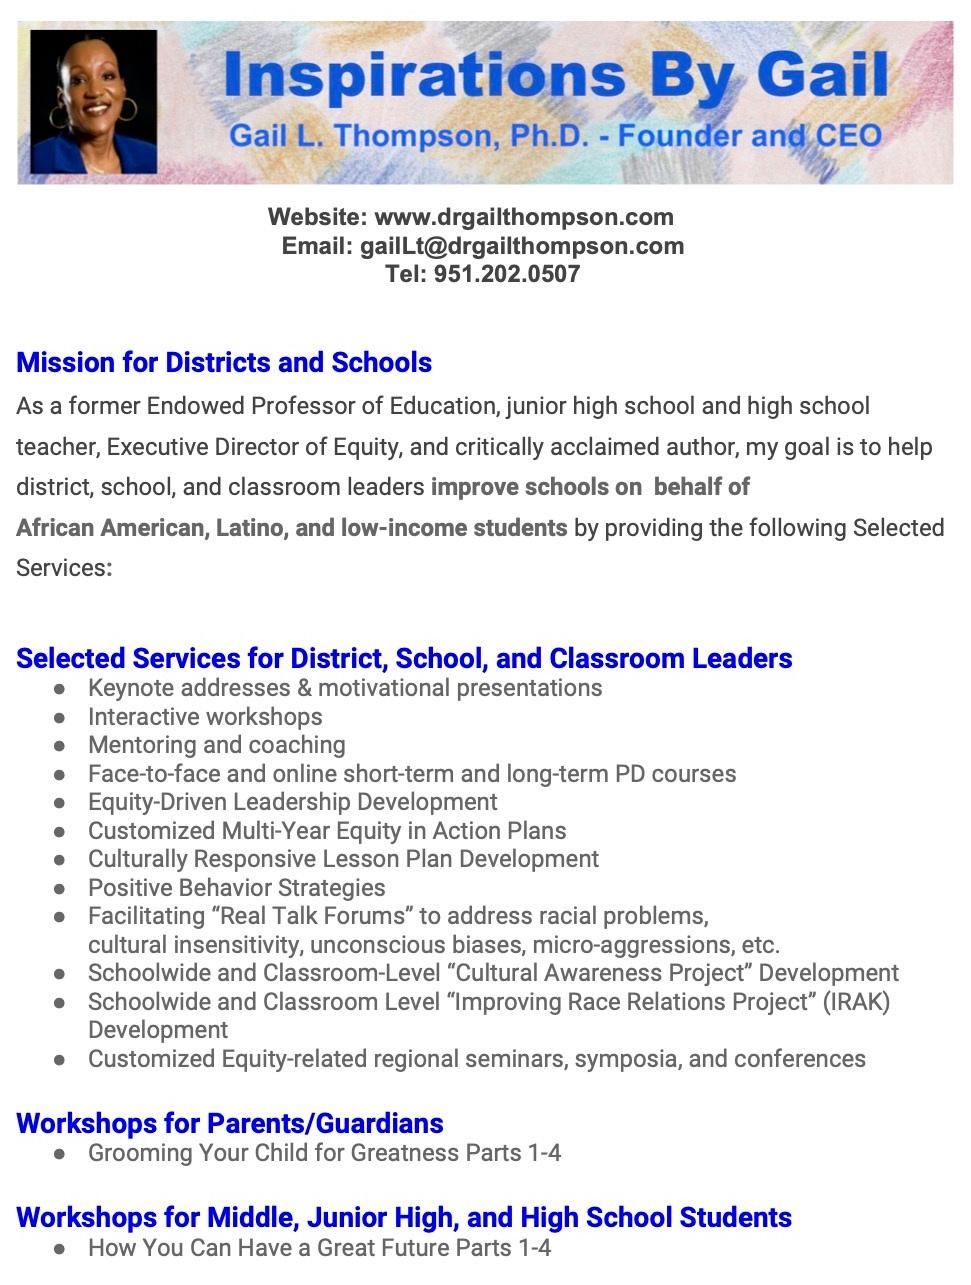 Inspirations by Gail LLC Flyer for Districts_Schoolsjpg.jpg